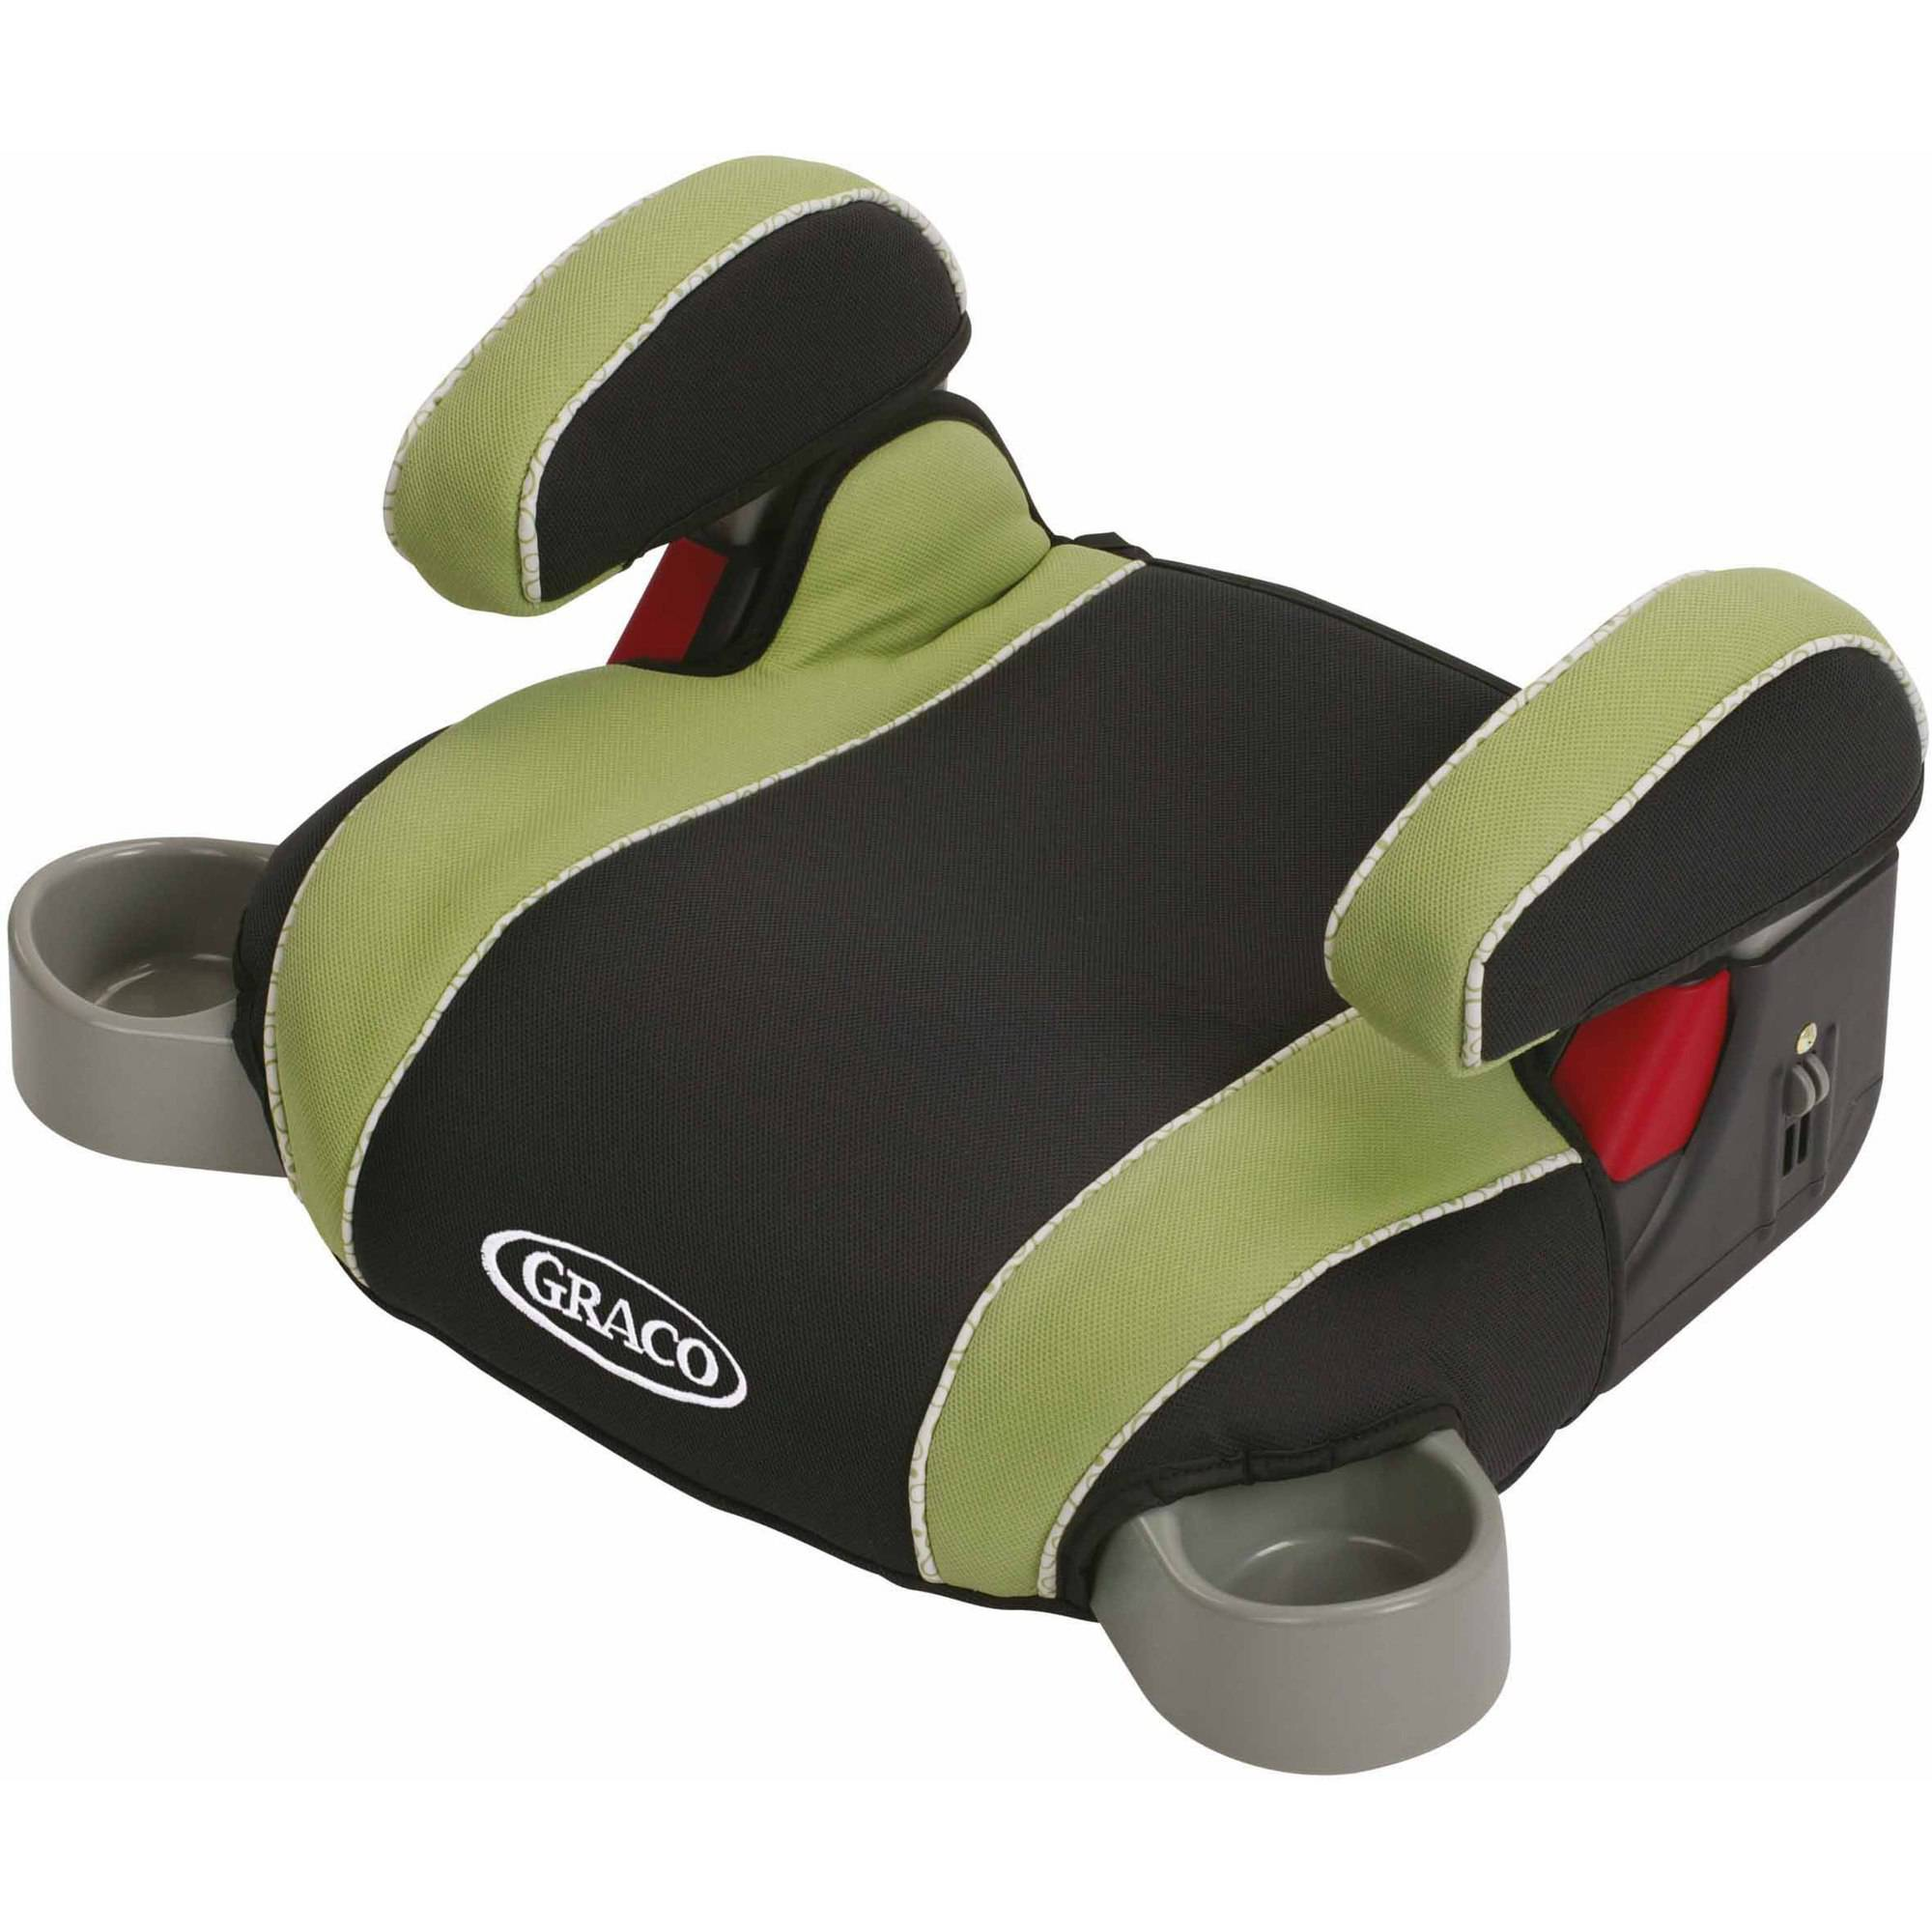 Graco Backless TurboBooster Booster Seat, Go Green